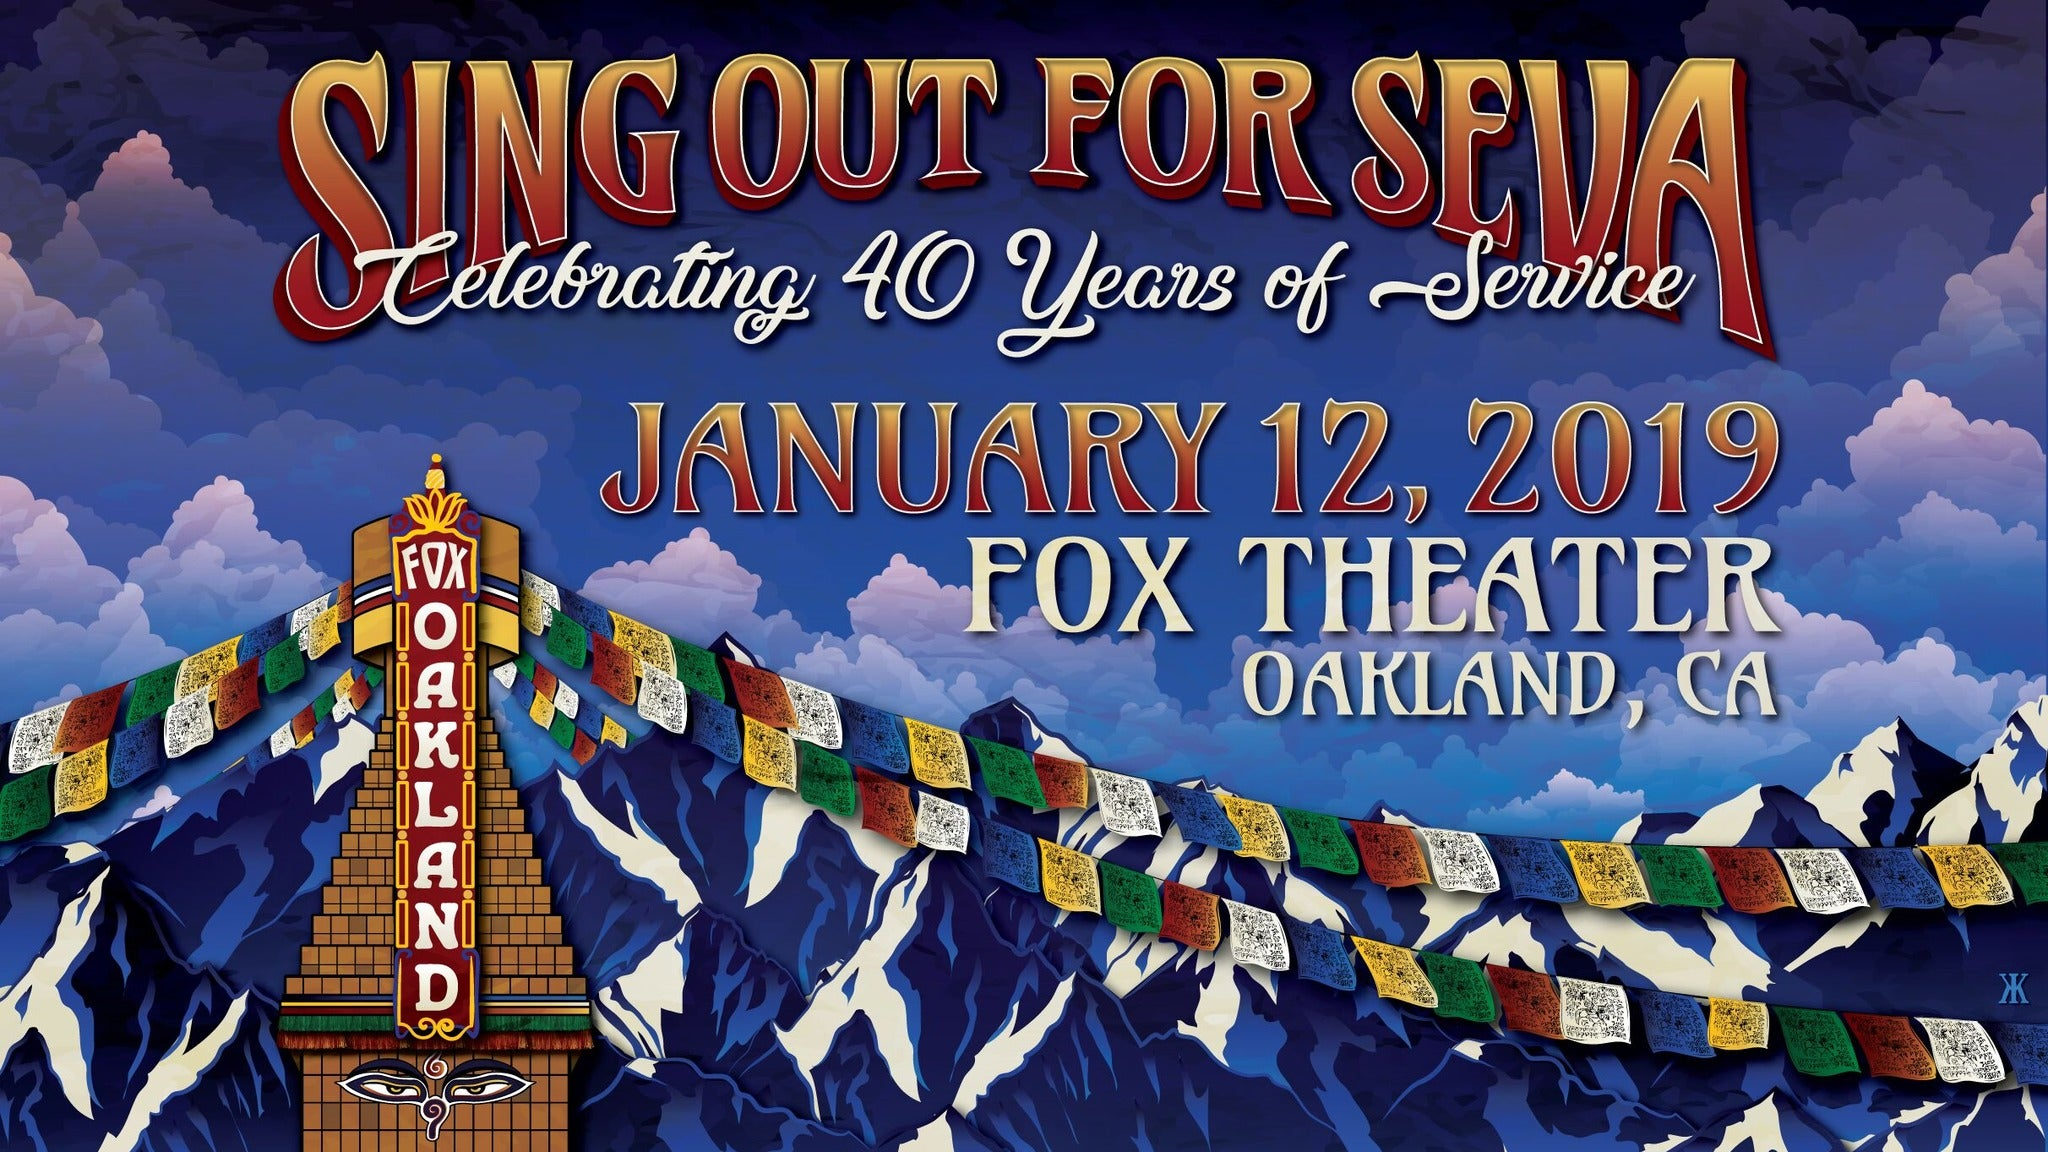 Sing Out For Seva at Fox Theater - Oakland